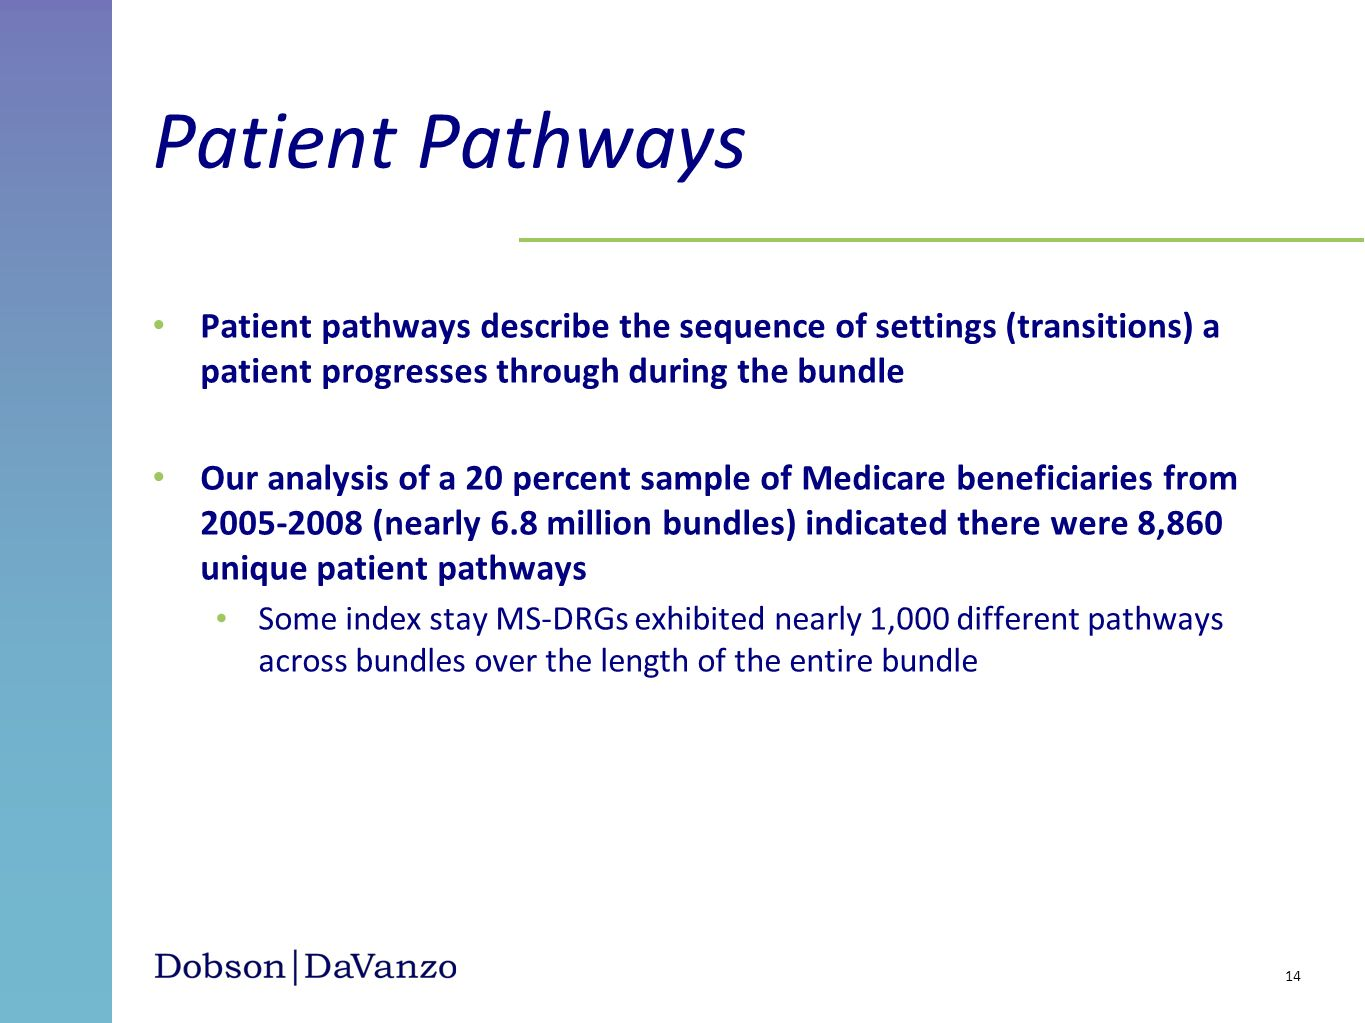 Patient PathwaysPatient pathways describe the sequence of settings (transitions) a patient progresses through during the bundle.